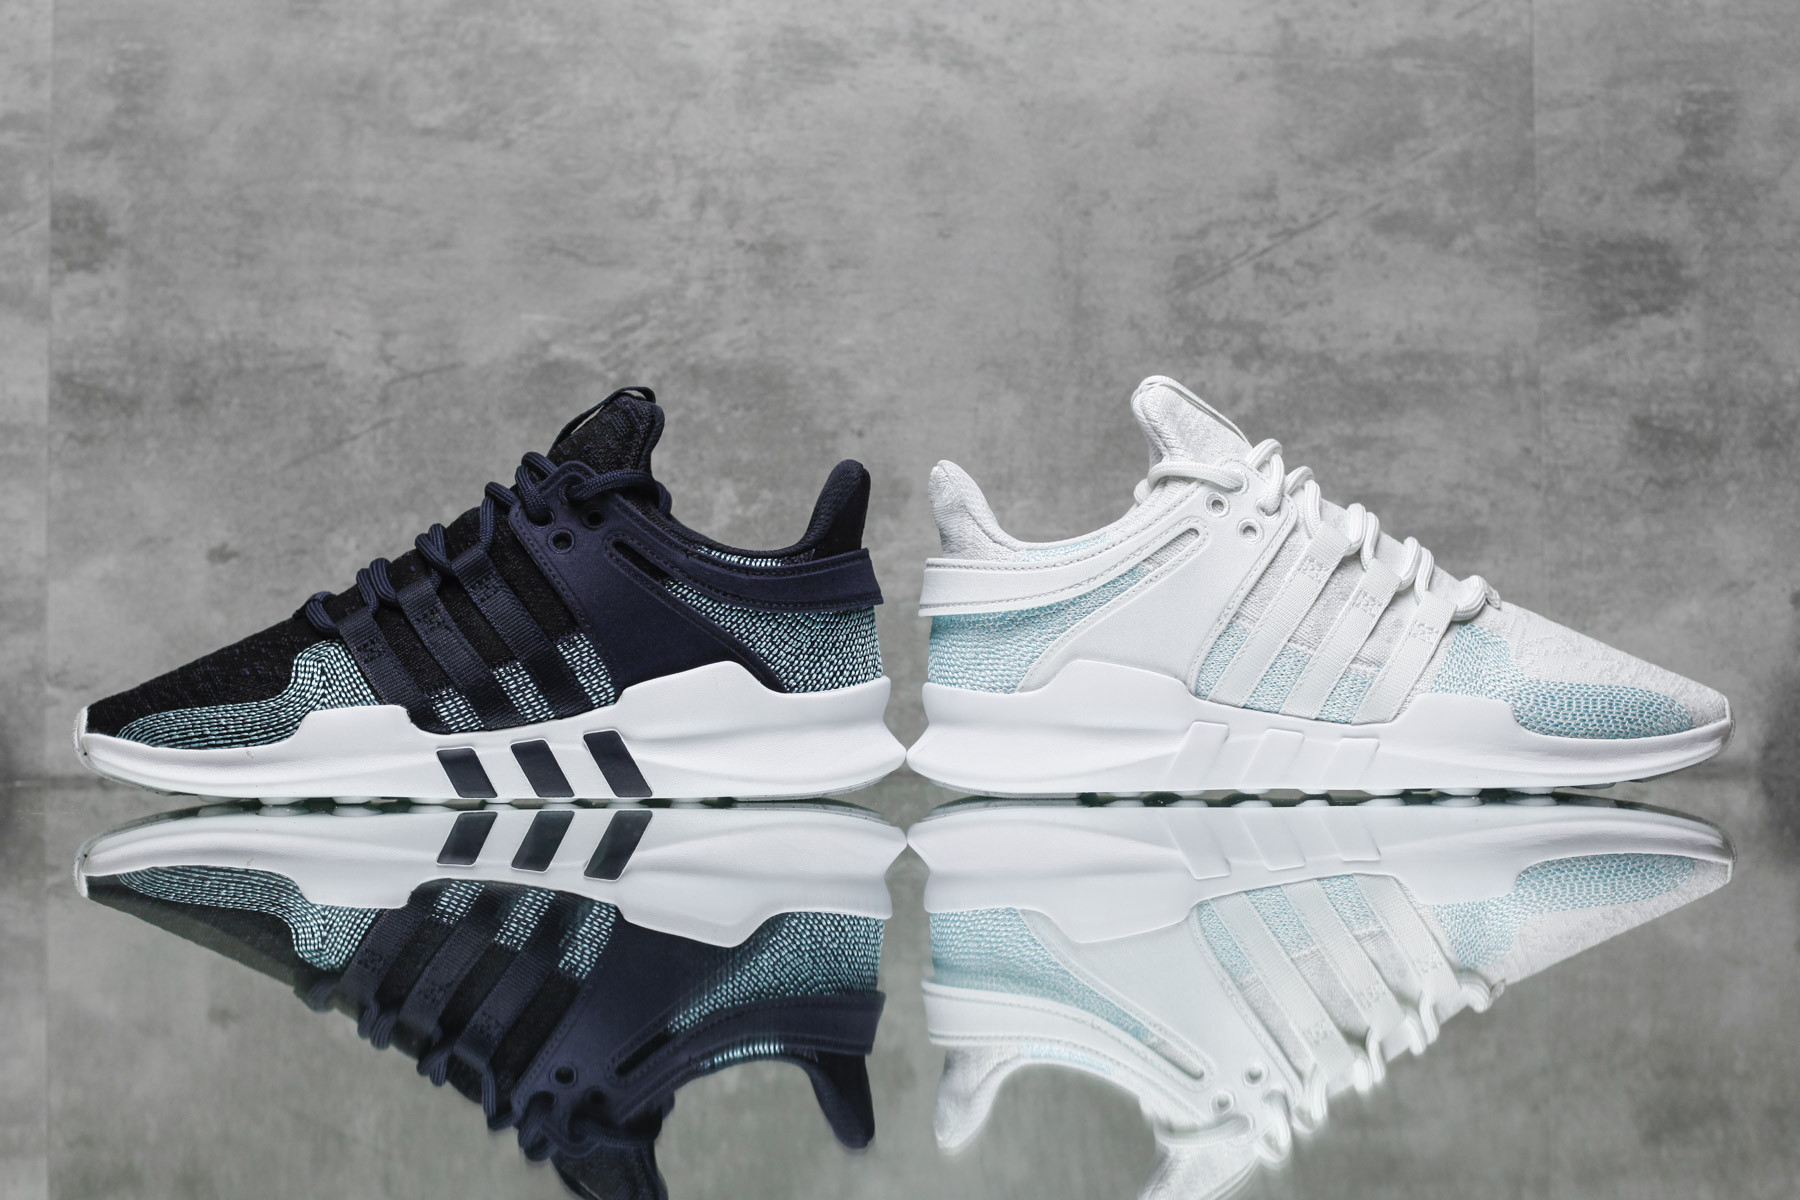 buy online 3ddc3 ac7a2 Adidas EQT Support ADV CK Parley - Herre - Sneakers - Sneake